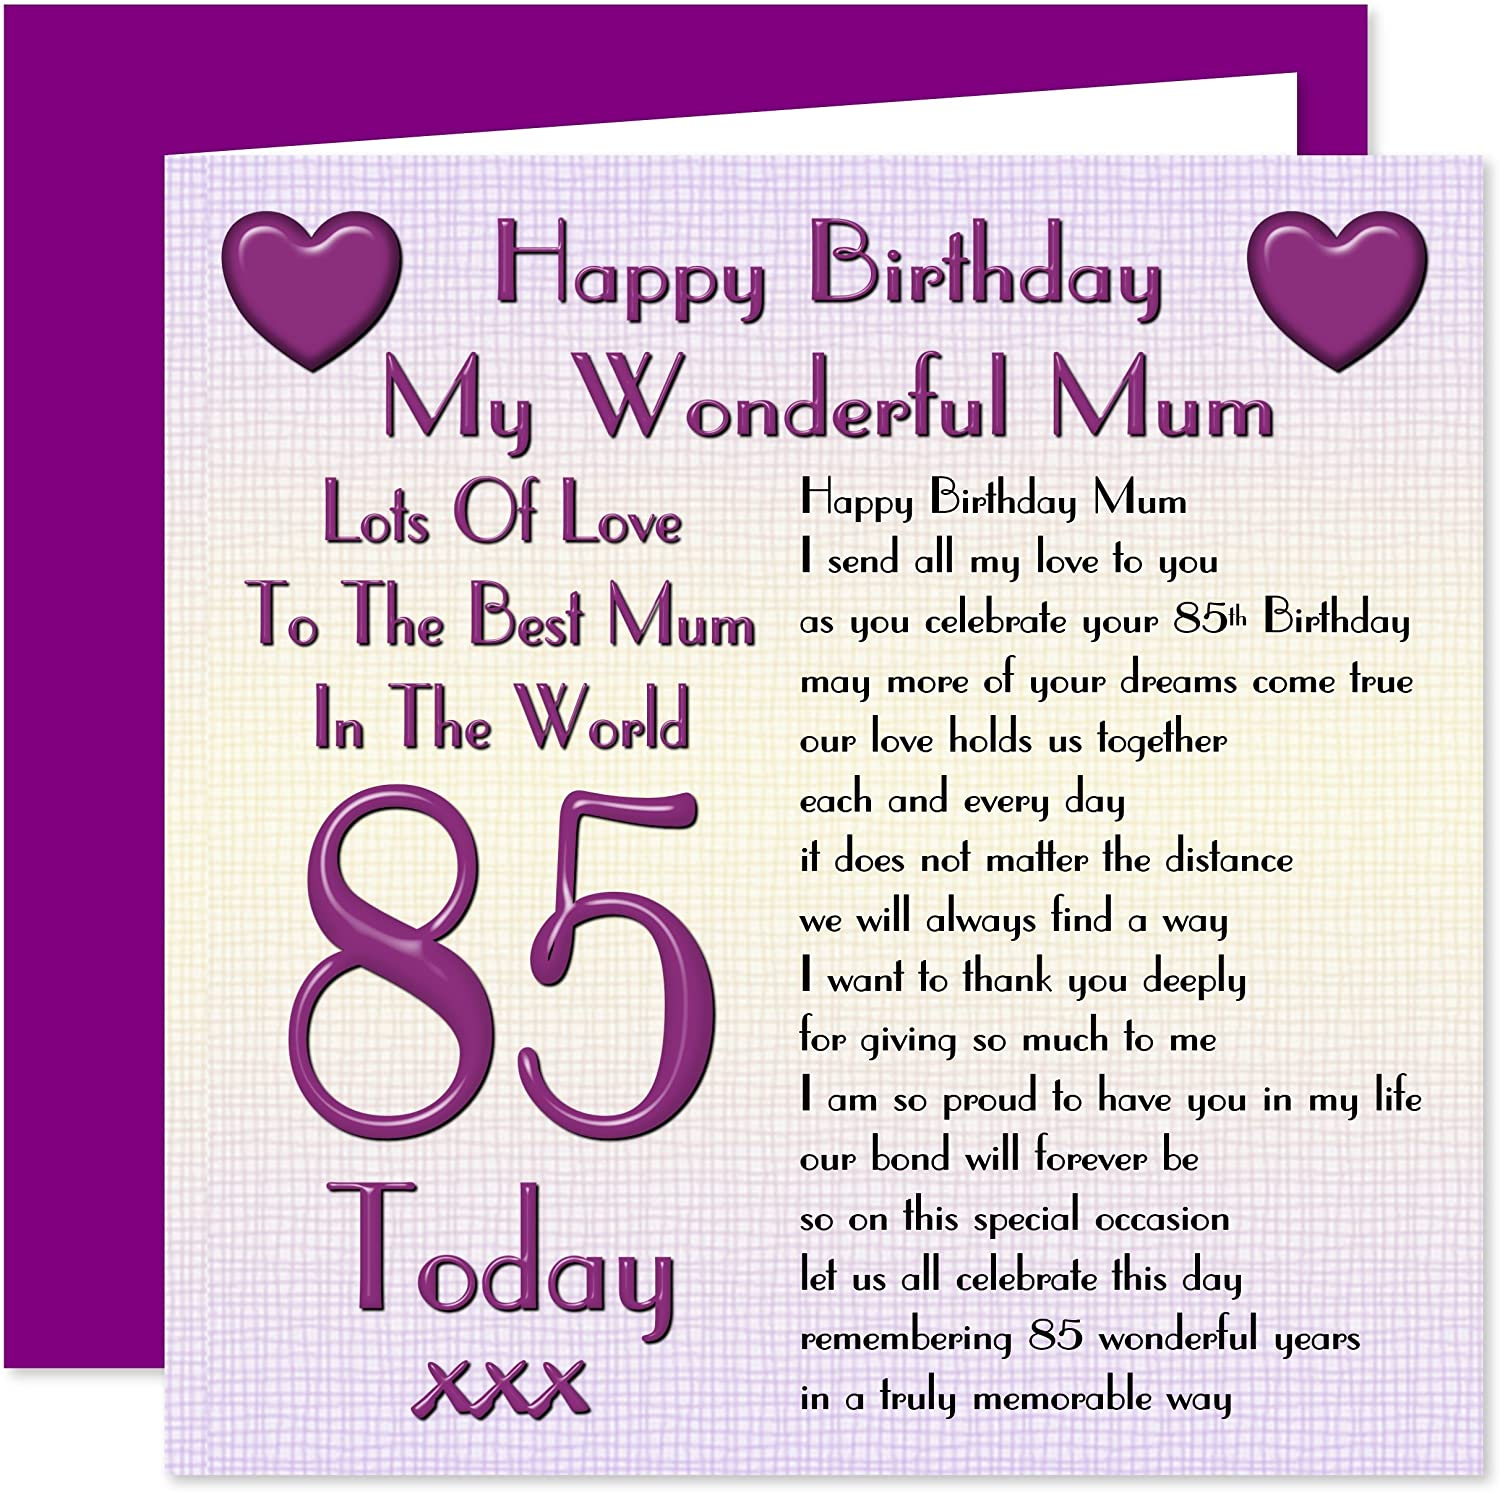 Mum 4th Happy Birthday Card - Lots of Love to The Best Mum in The World -  4 Today